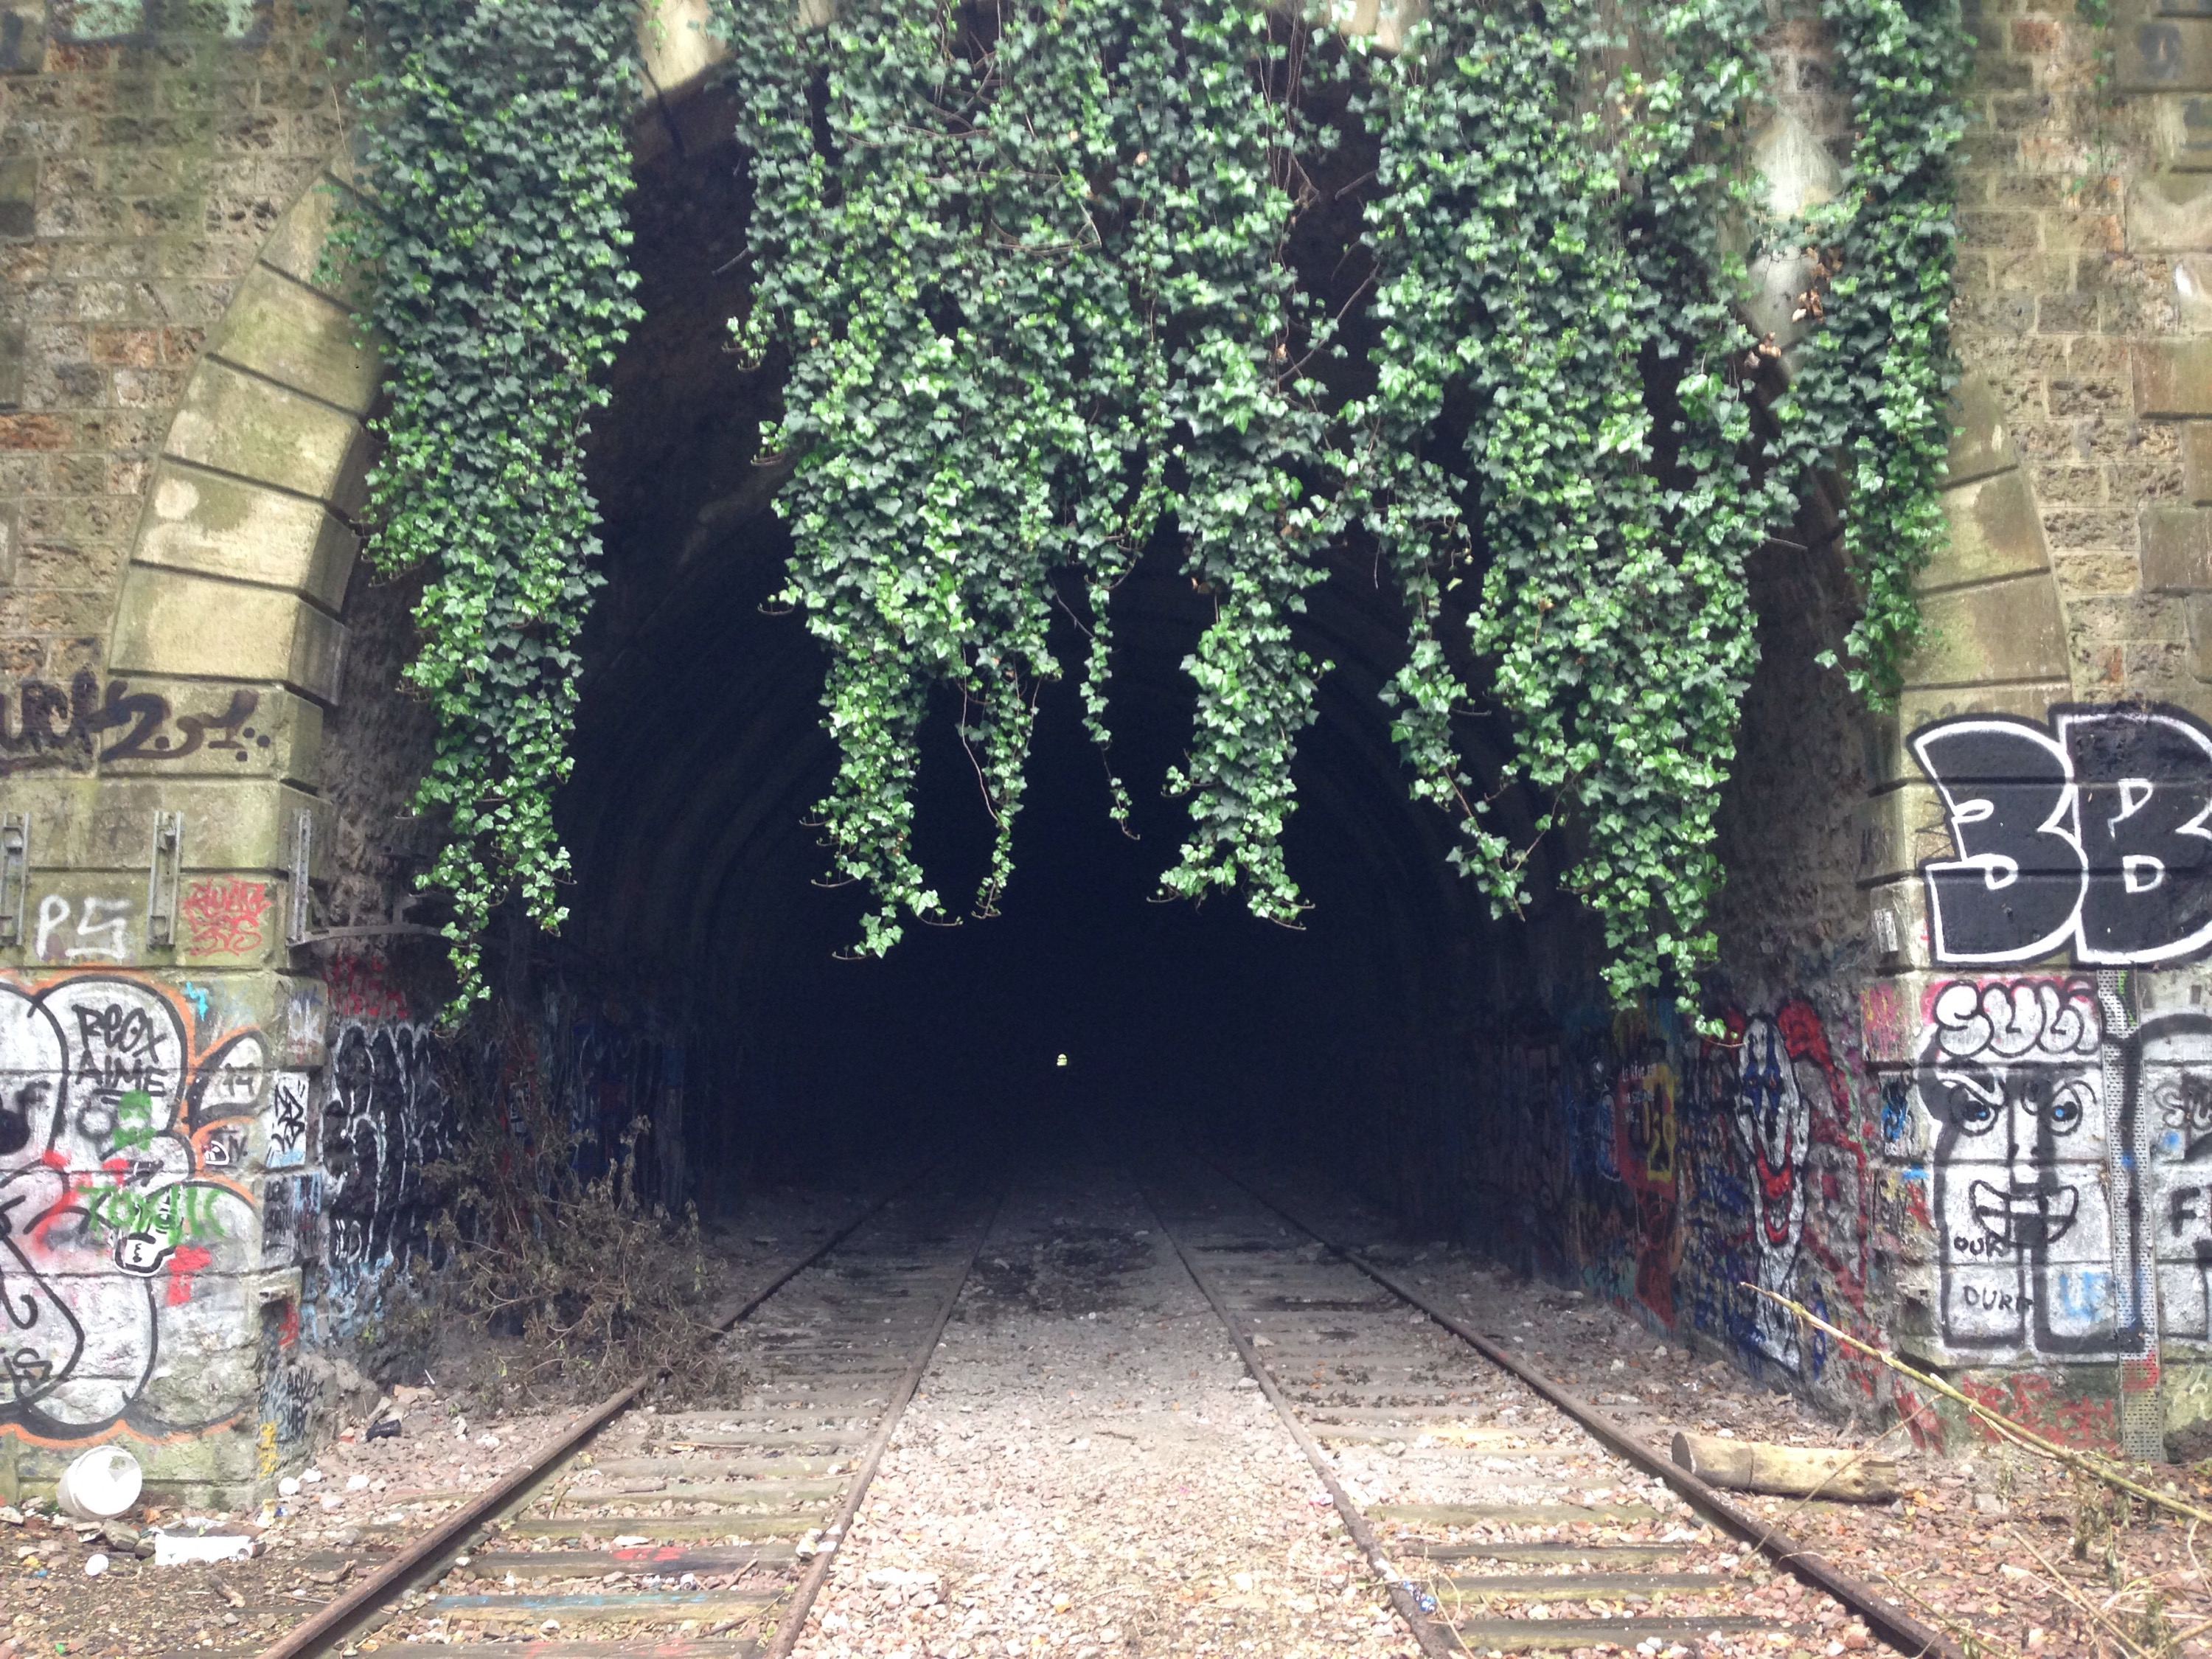 How to explore Paris beautiful abandoned railway – Tripping Over